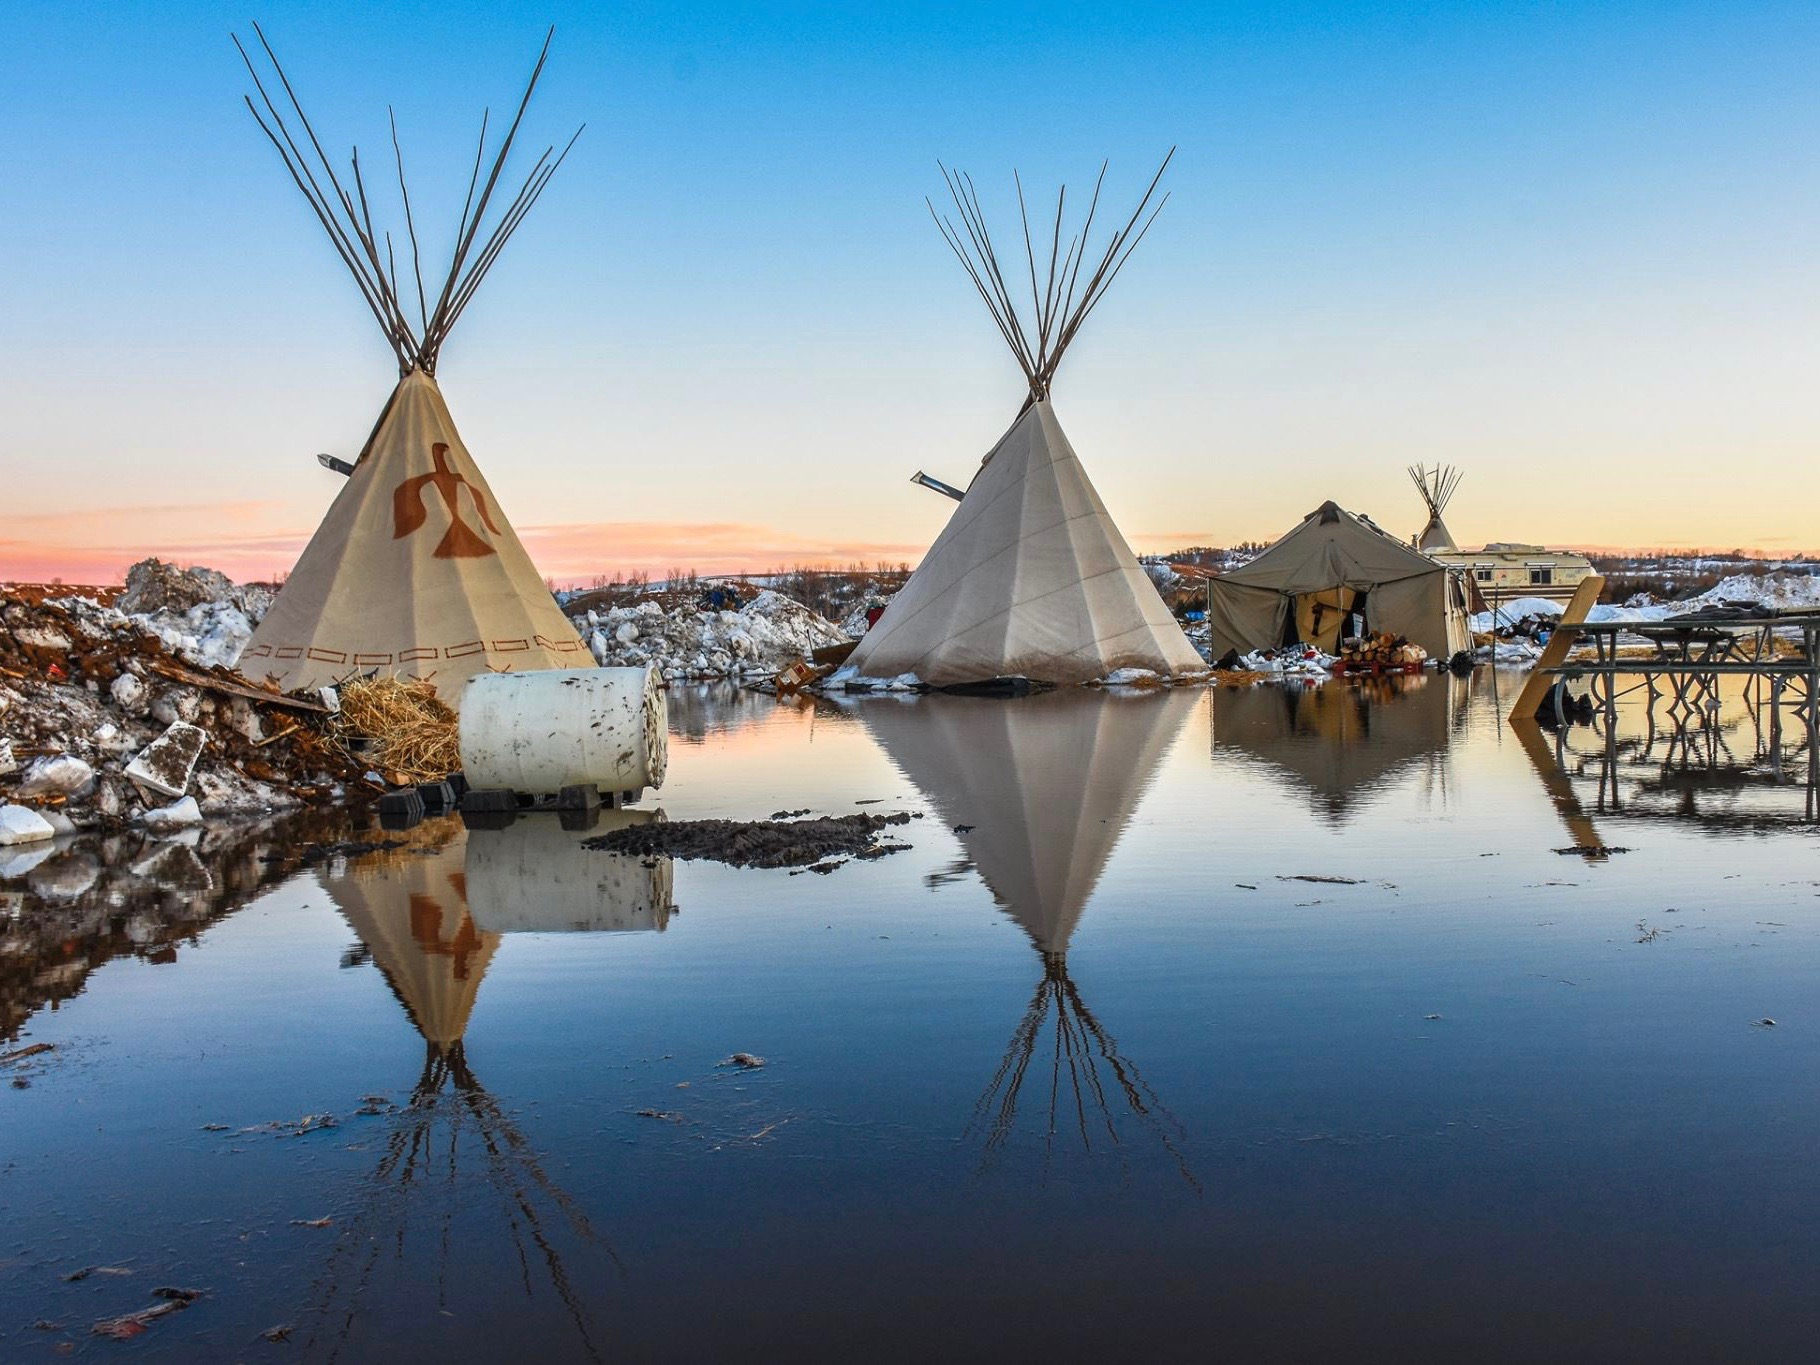 James Giago Davies: Tribes face bigger threat than Dakota Access